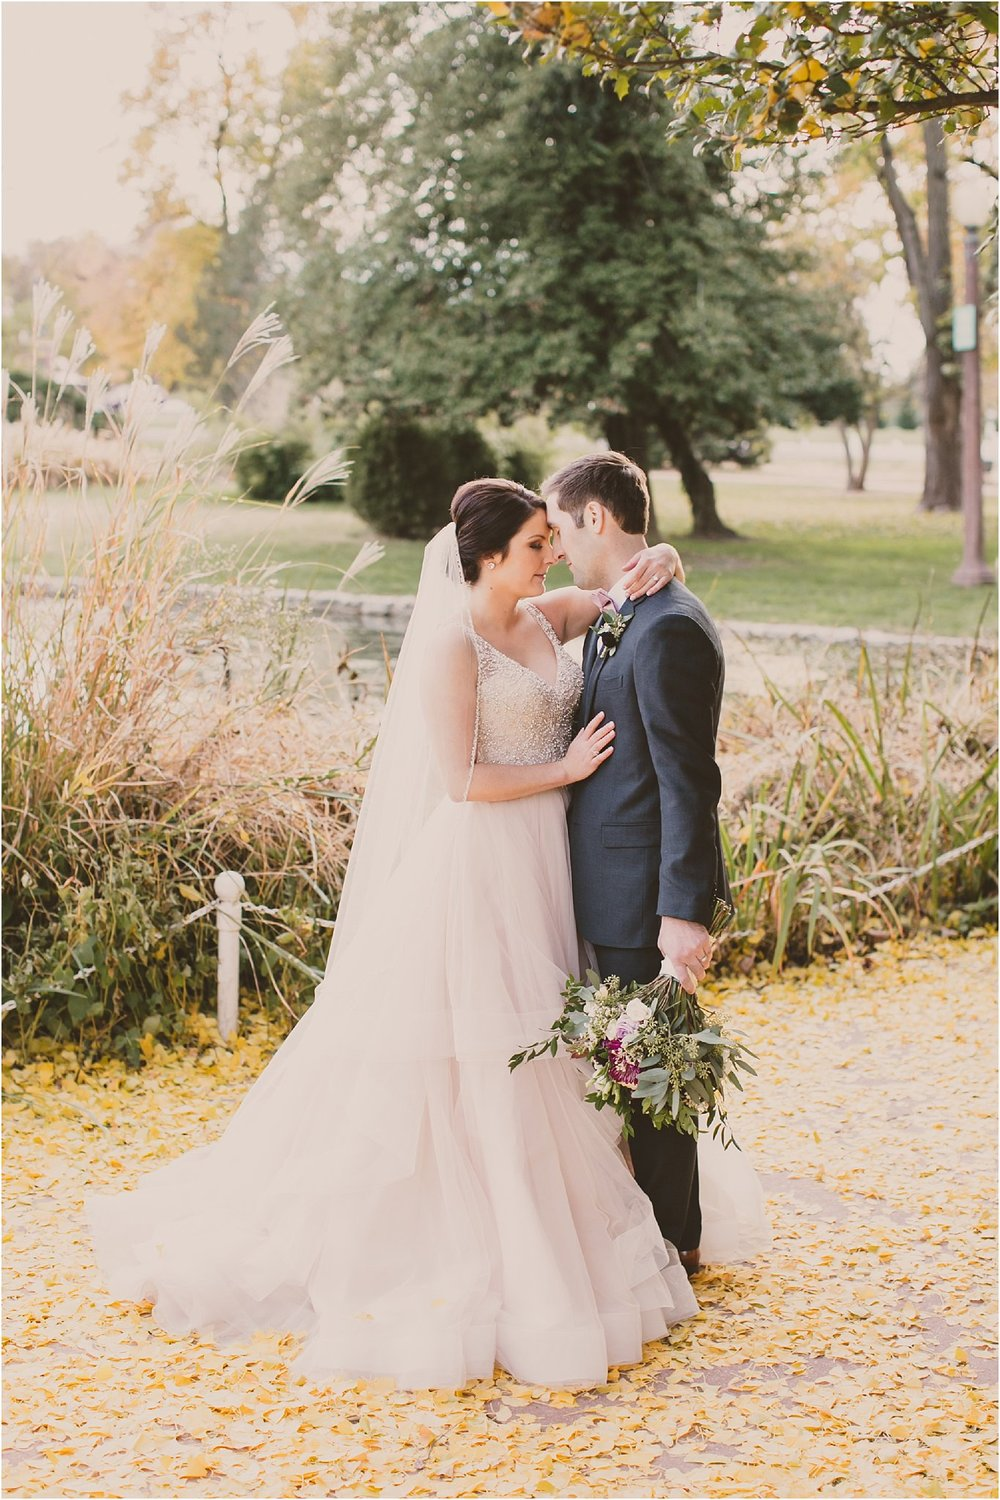 PattengalePhotography_boho_OffBeat_Wedding_StLouis_PiperPalmHouse_Westin_Hipster_Modern_Elegance_November_Fall_Weddings_Husband&Wife_Photographer_Organic_Pink_Greens_Mark&Julia__0100.jpg